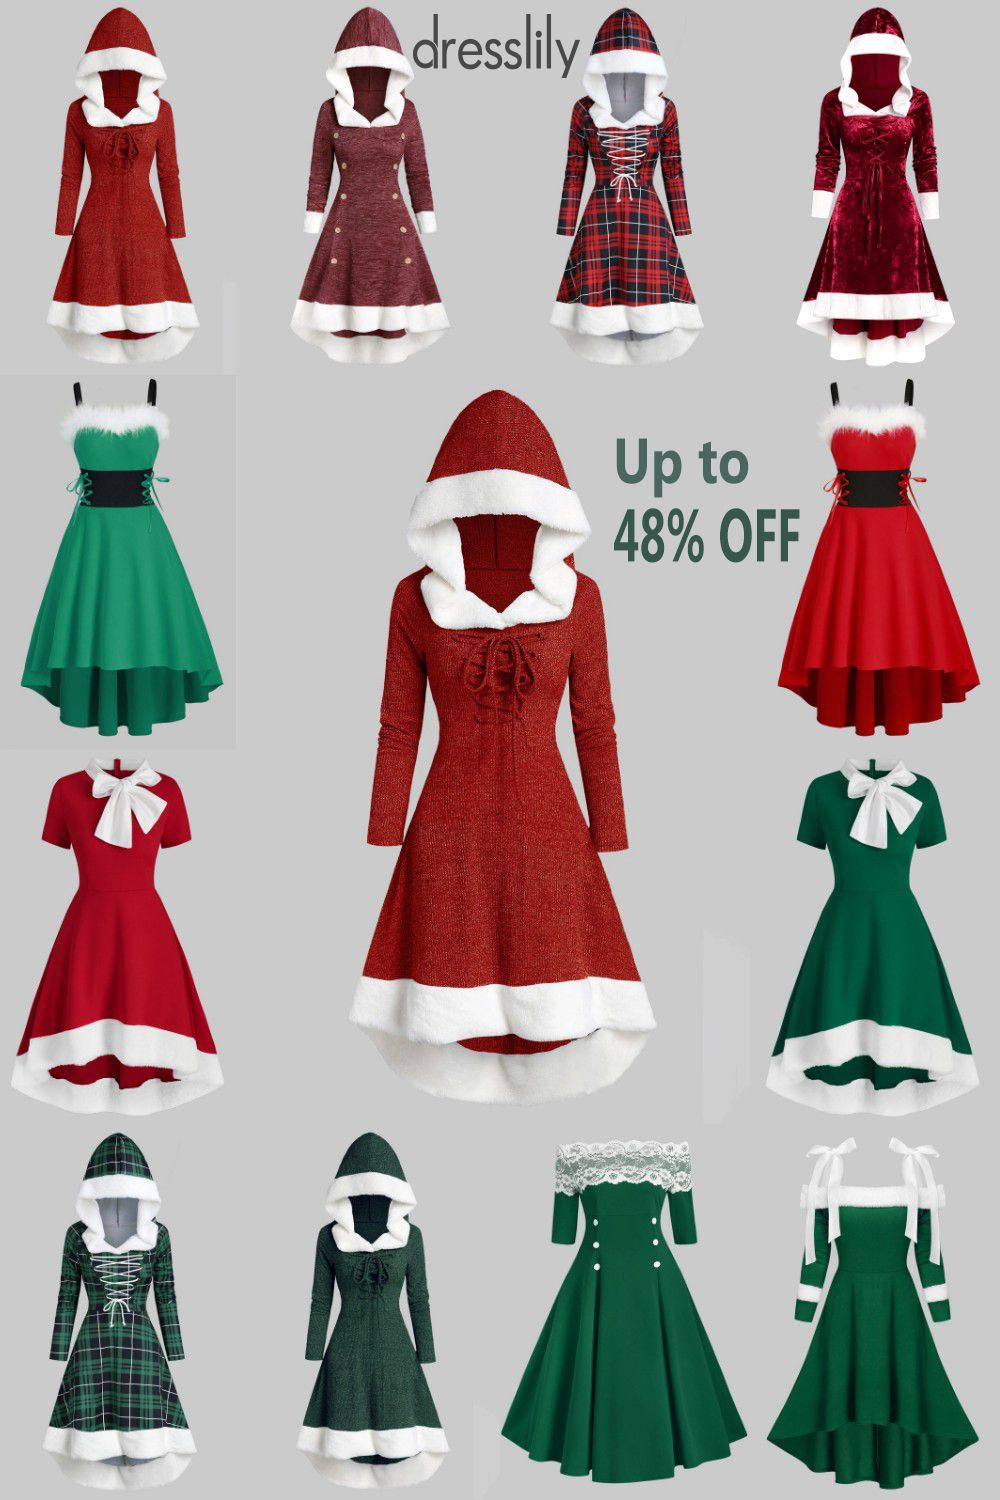 Long Sleeve Dresses | Casual Dresses | Winter Fashion Coats | Christmas Outfits | Vintage Dresses #casualchristmasoutfitsforwomen